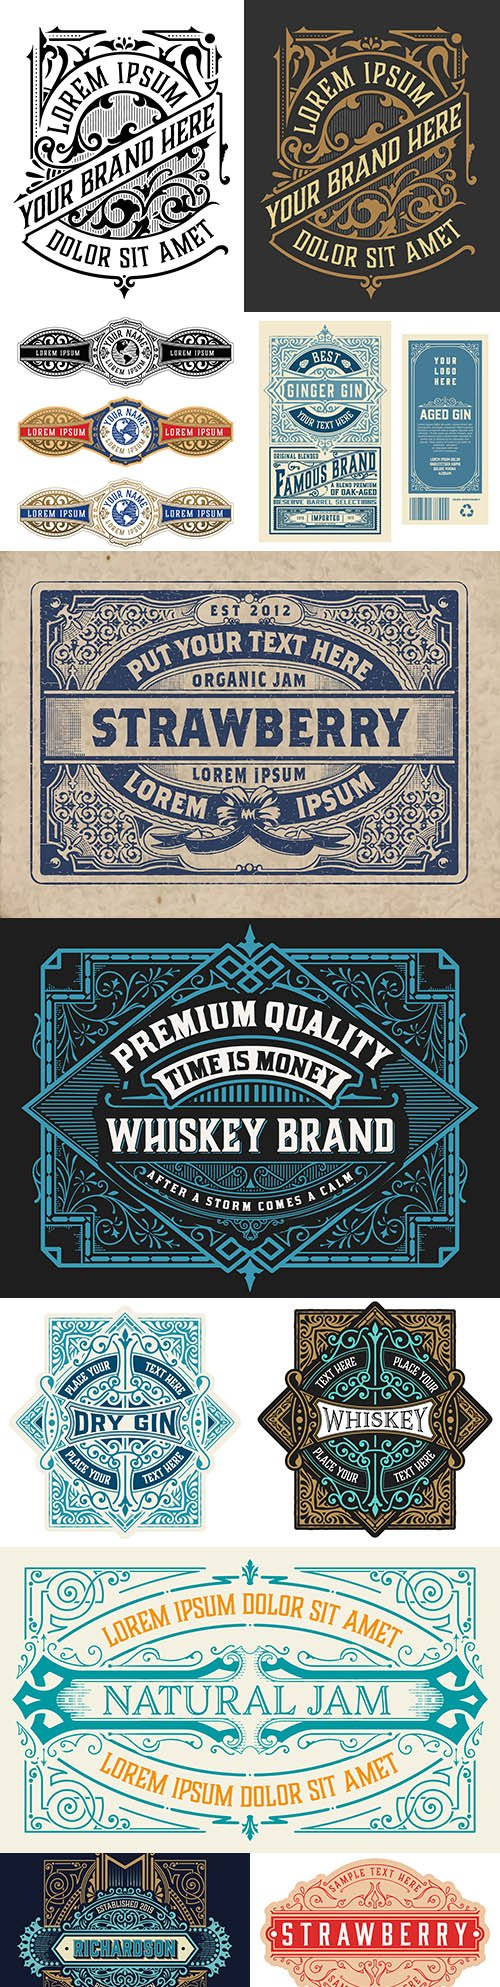 Vintage logo and etiquette template with detailed design 5